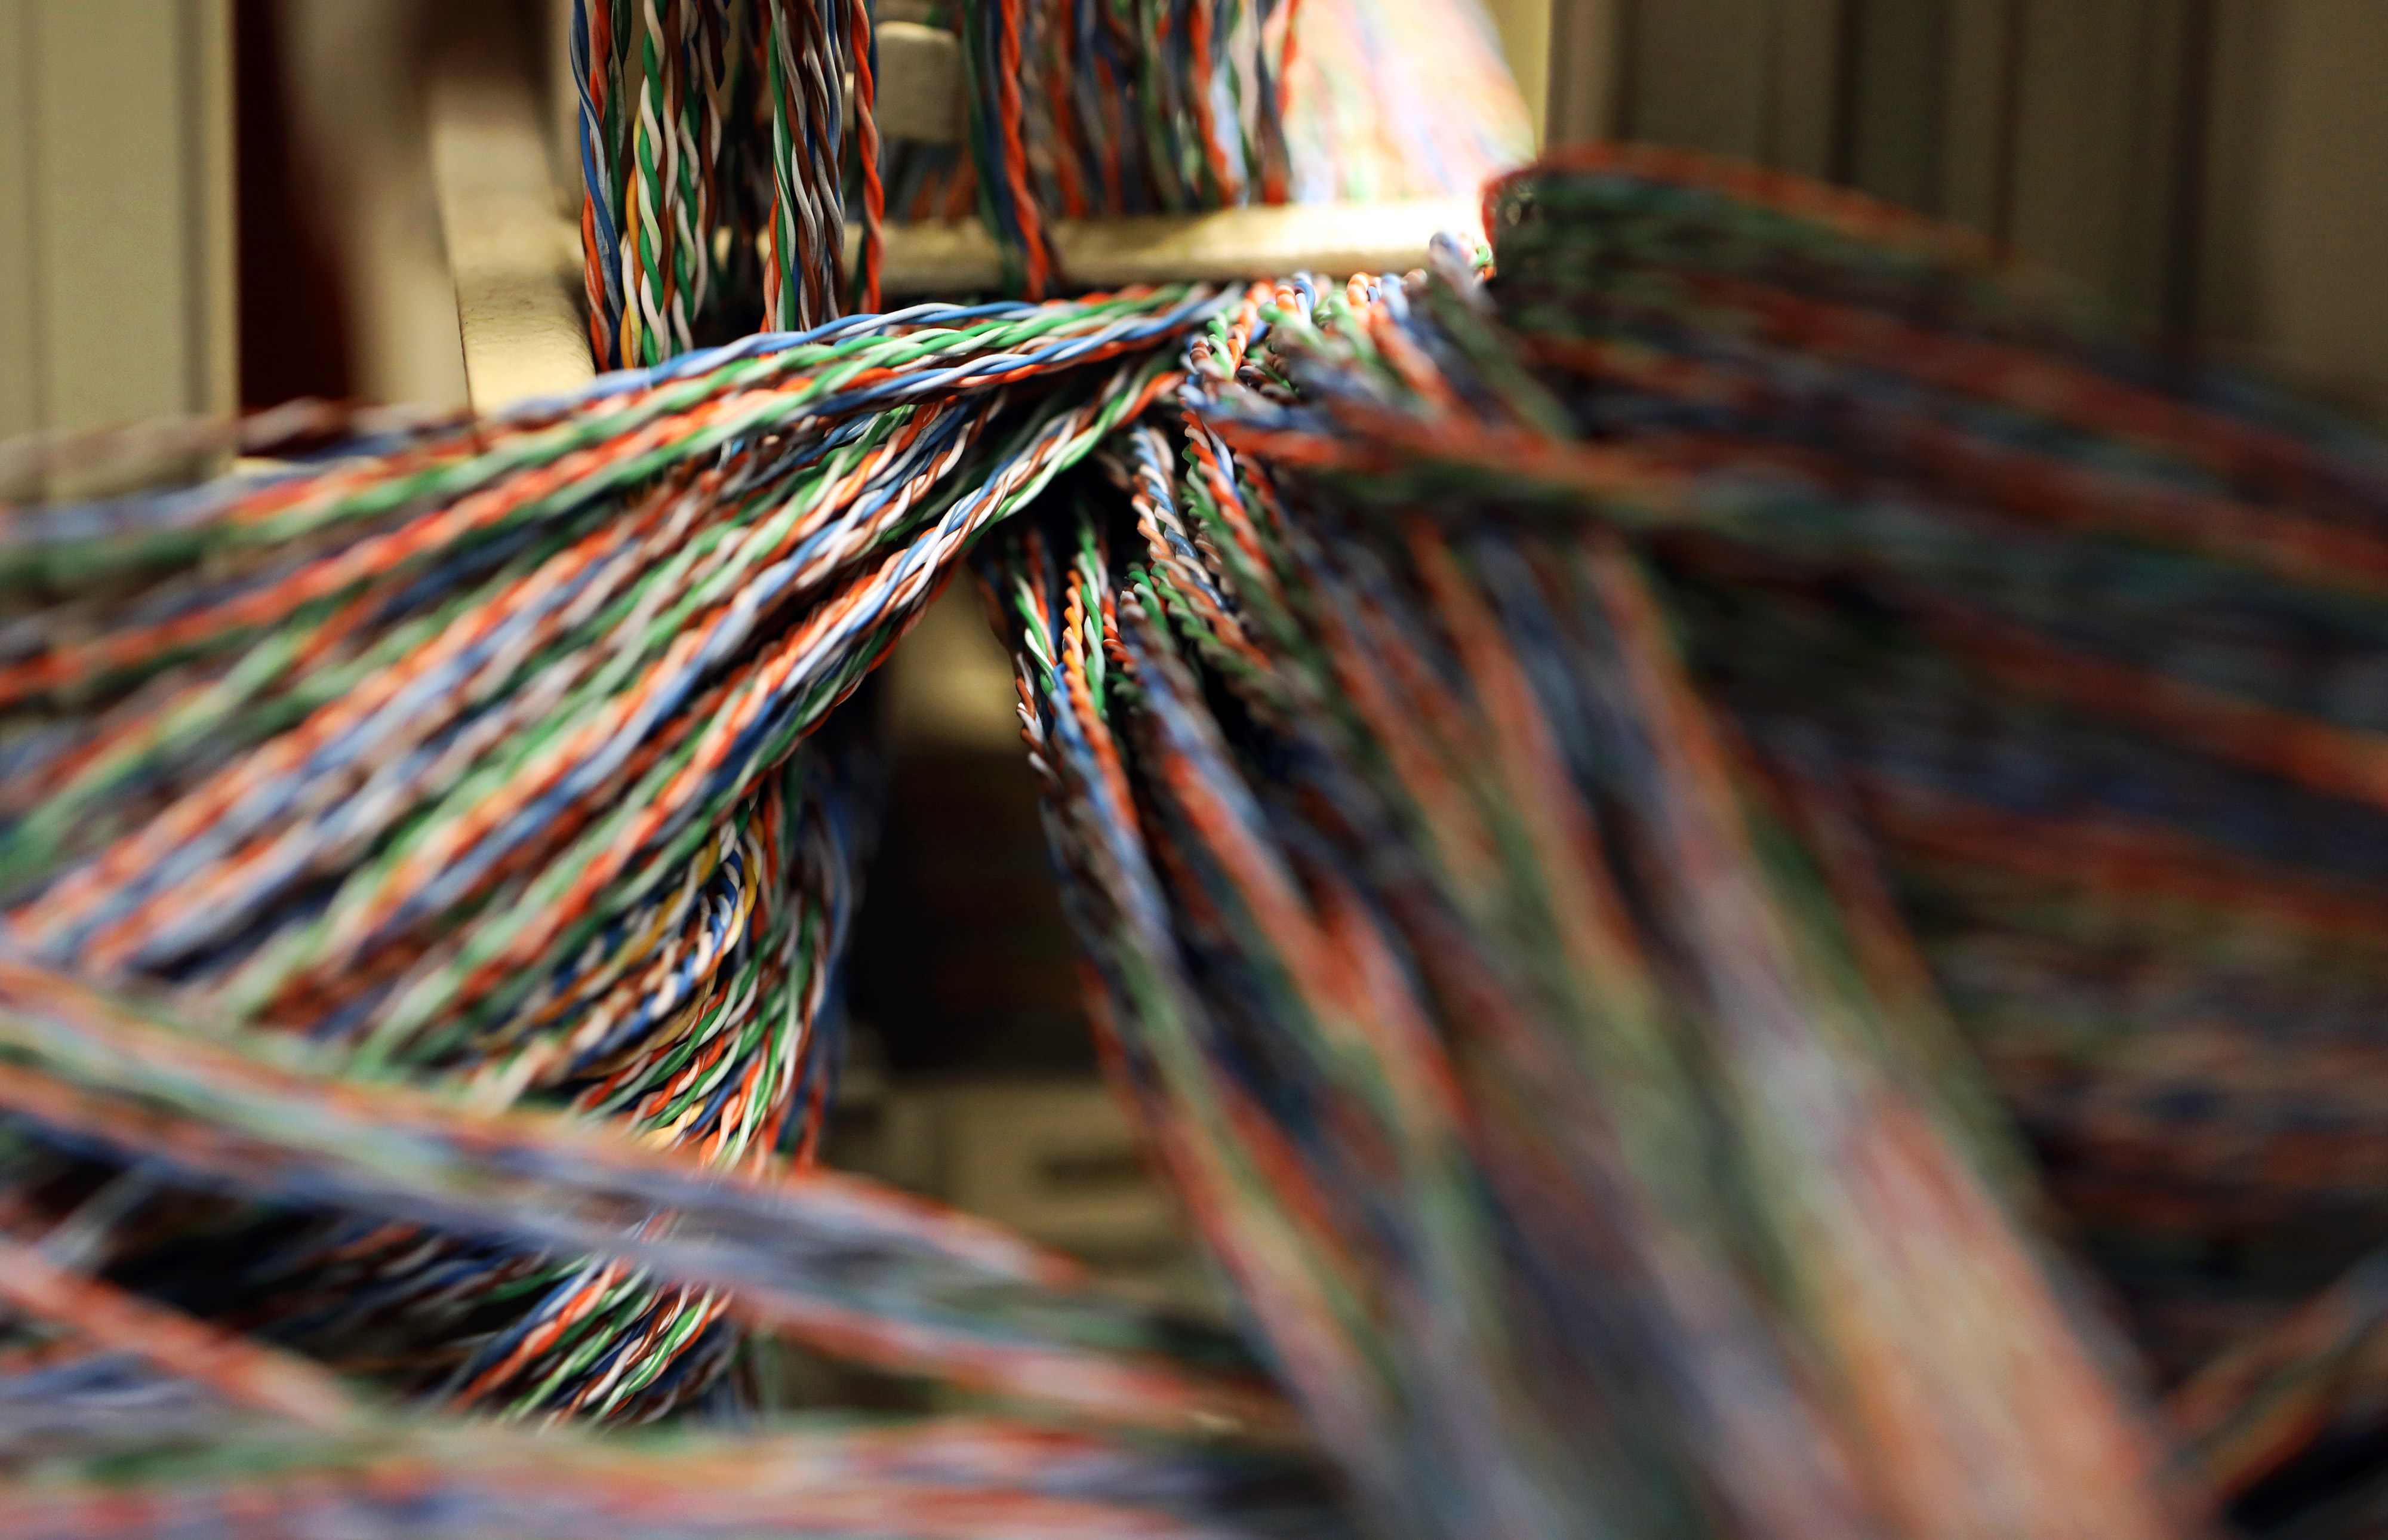 Twisted copper wiring sits in an electrical unit inside a communications room at an office in London, U.K., on Monday, May 15, 2017.